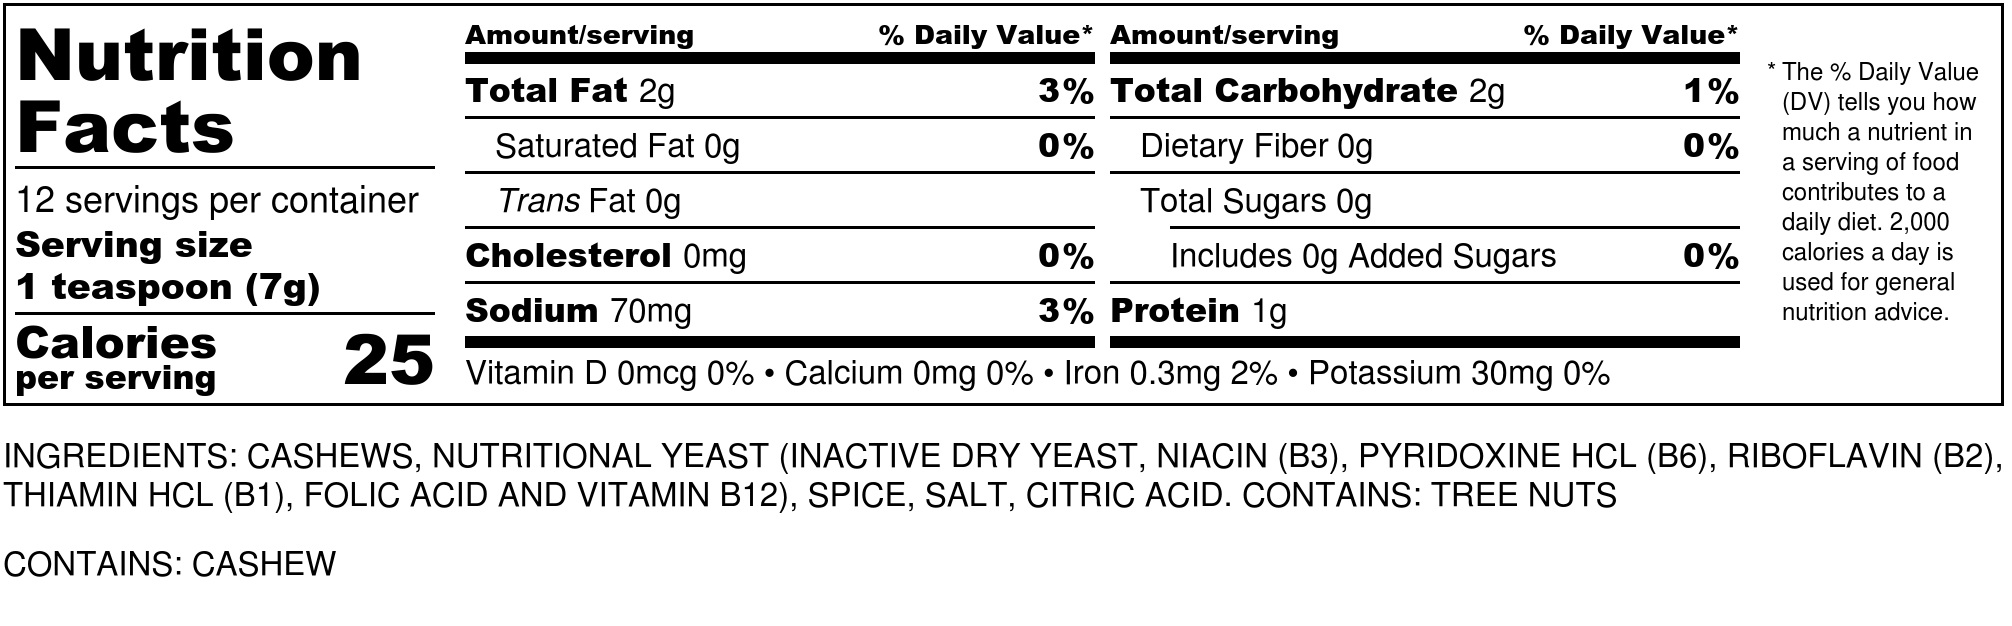 Vegan Parm - Nutrition Label.jpg